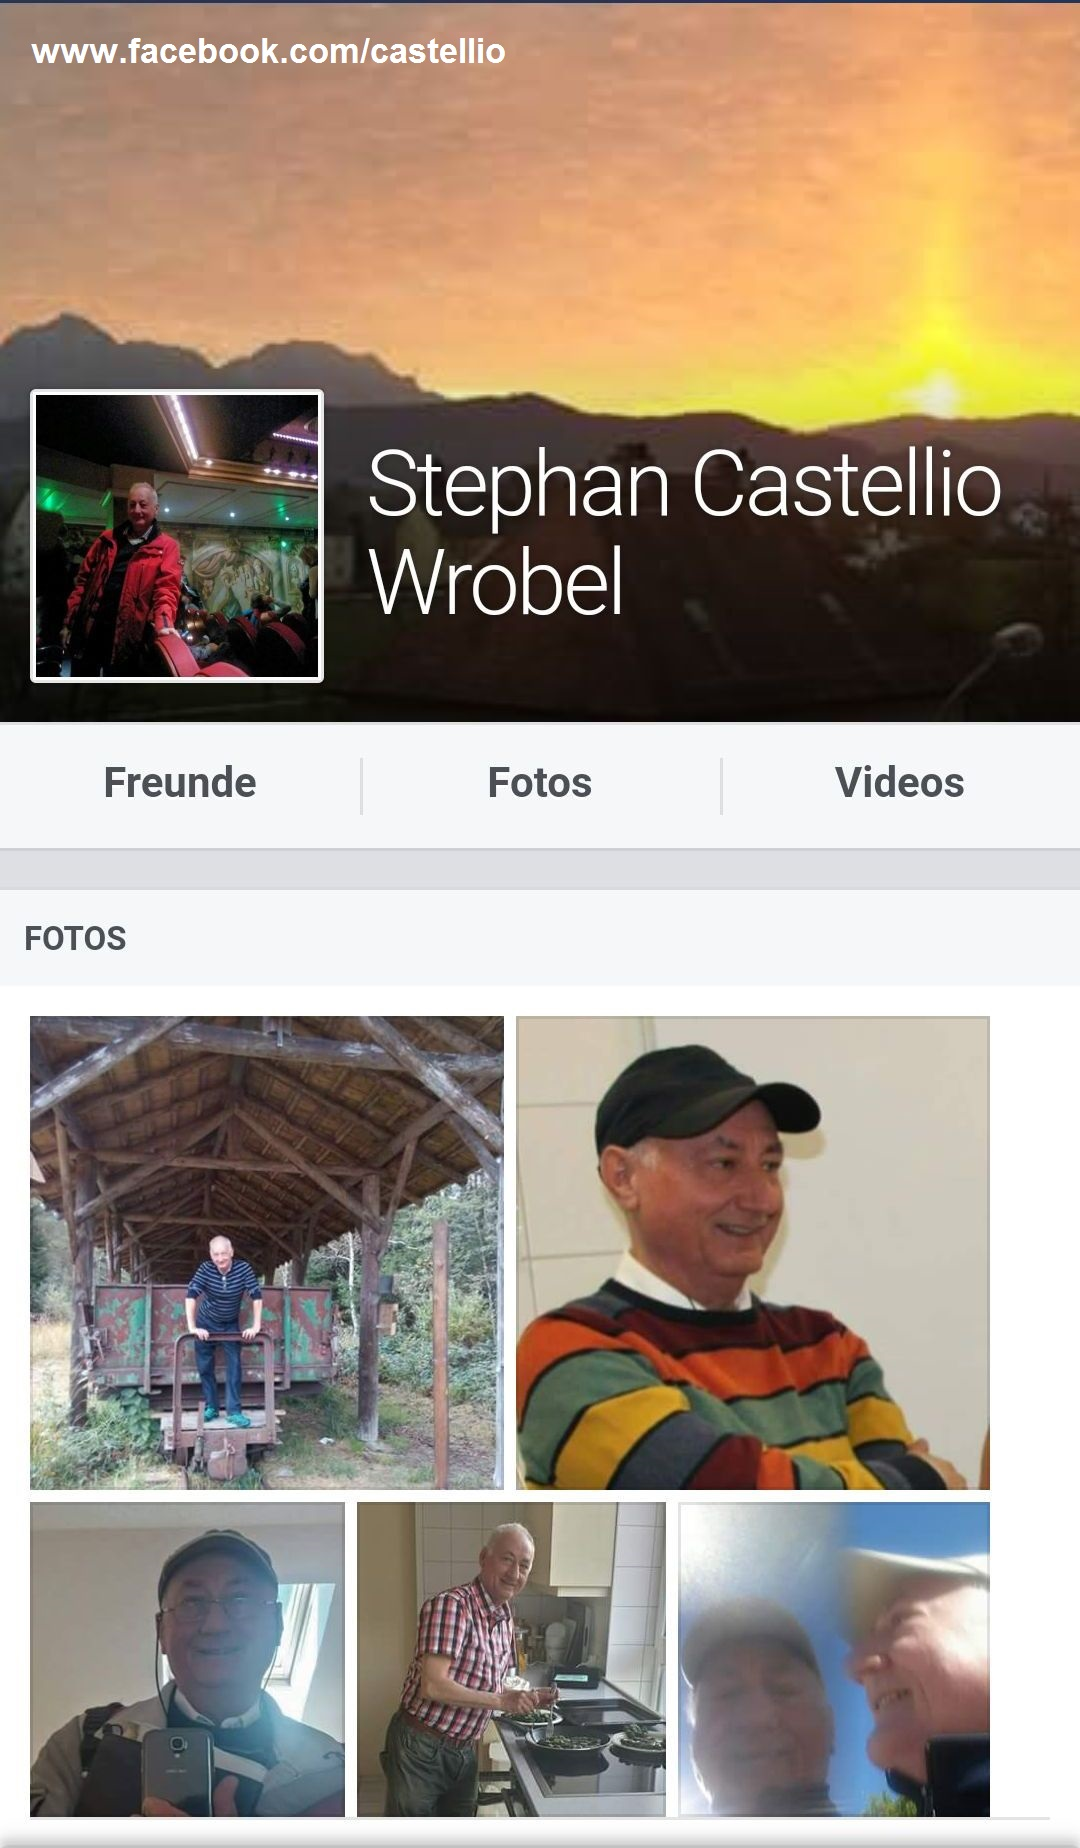 Stephan Castellio (Wrobel) on facebook